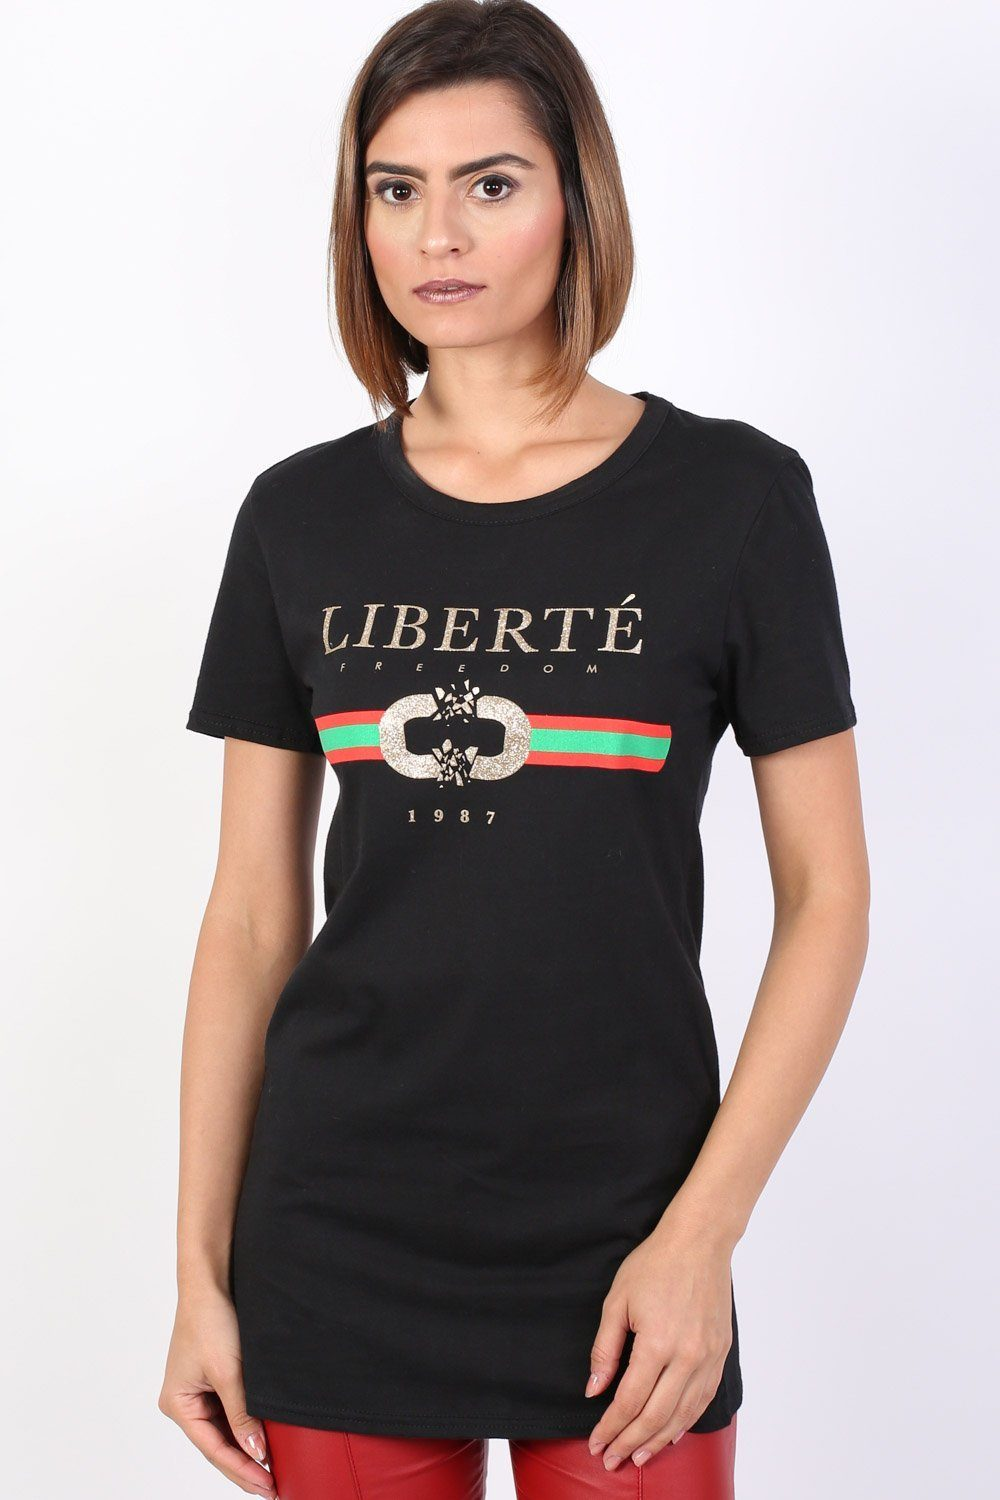 Liberte Print Graphic T-Shirt in Black 0